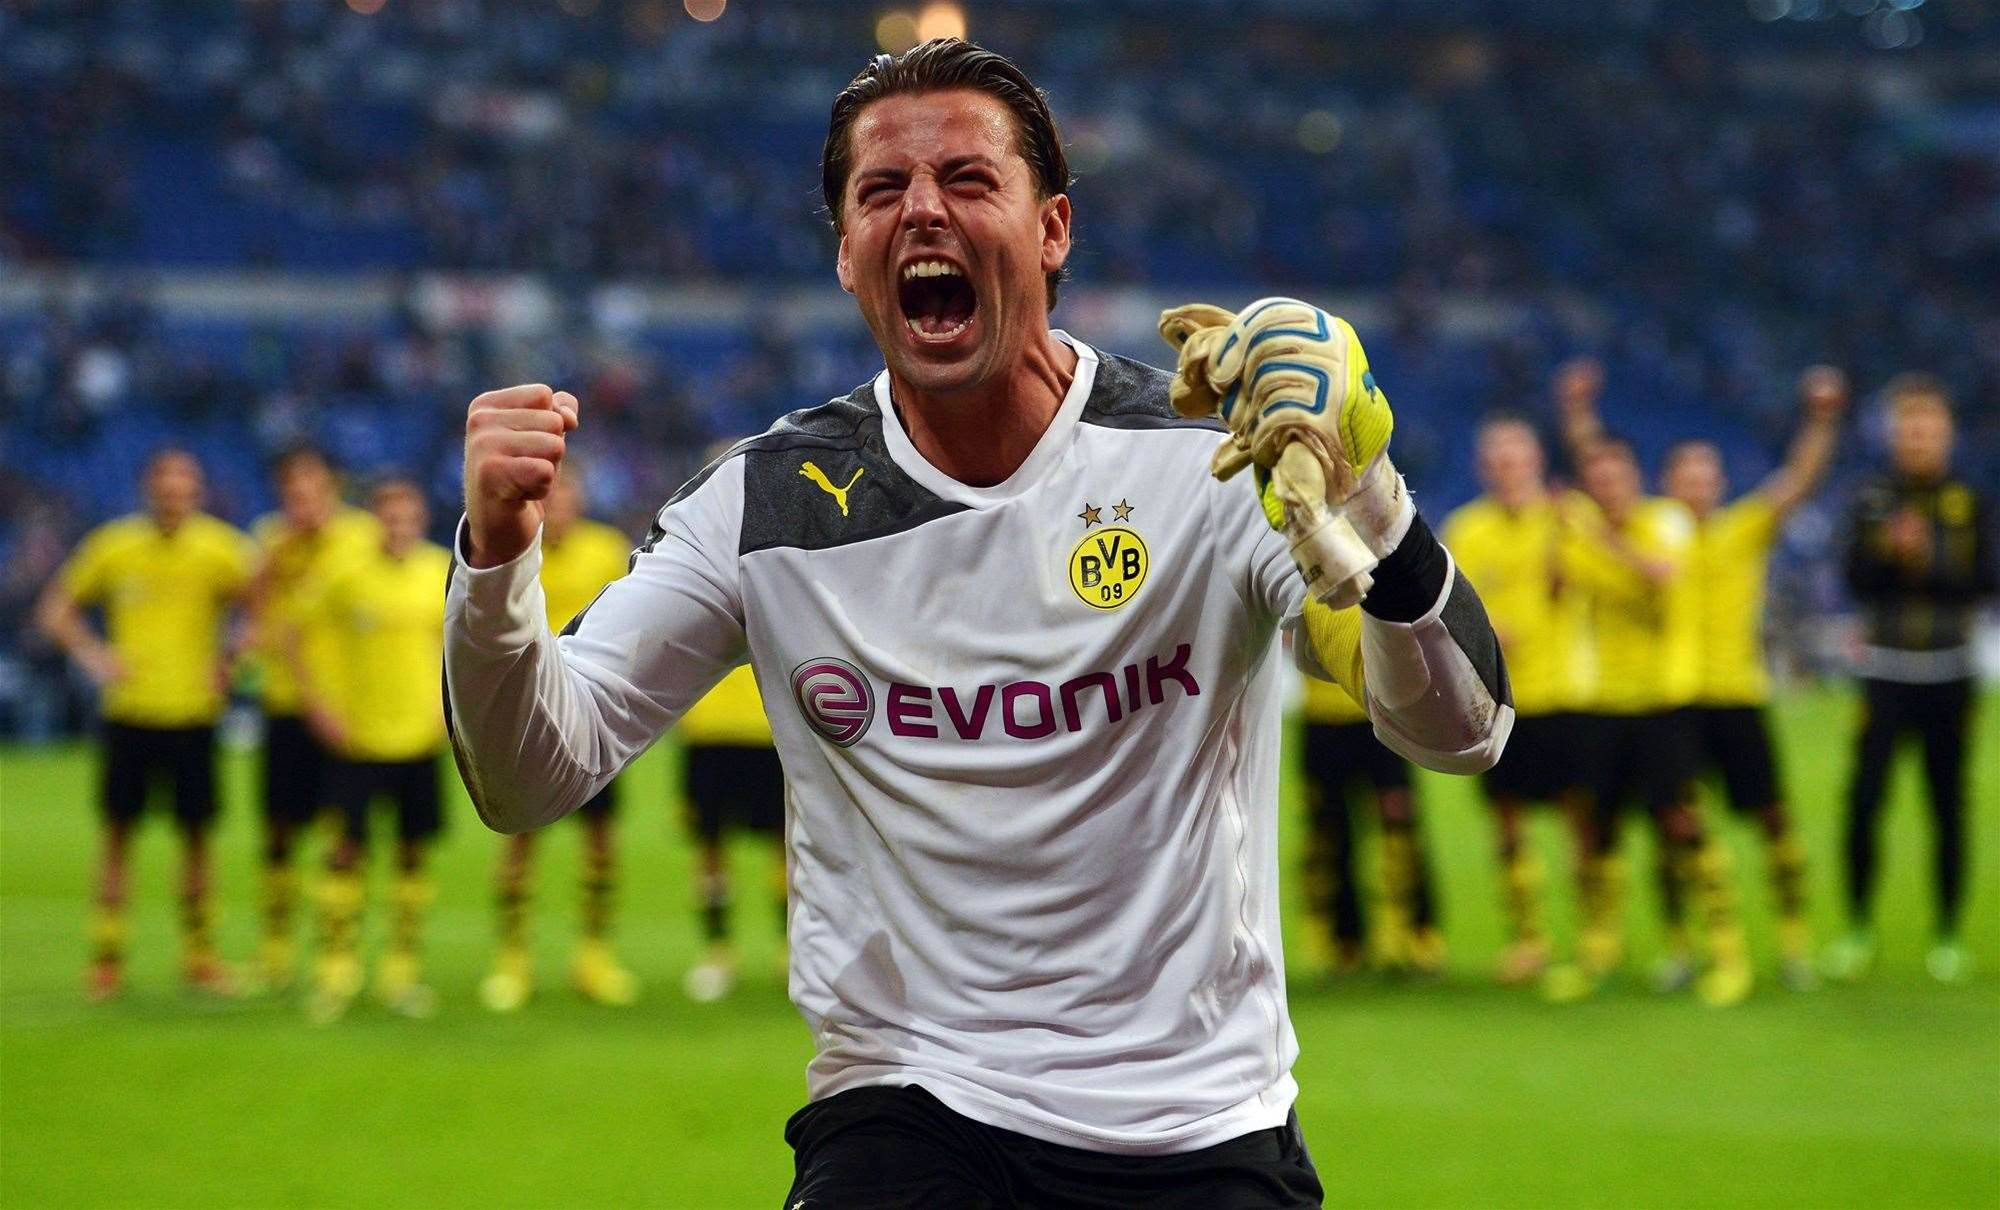 Weidenfeller rewarded with Germany call-up